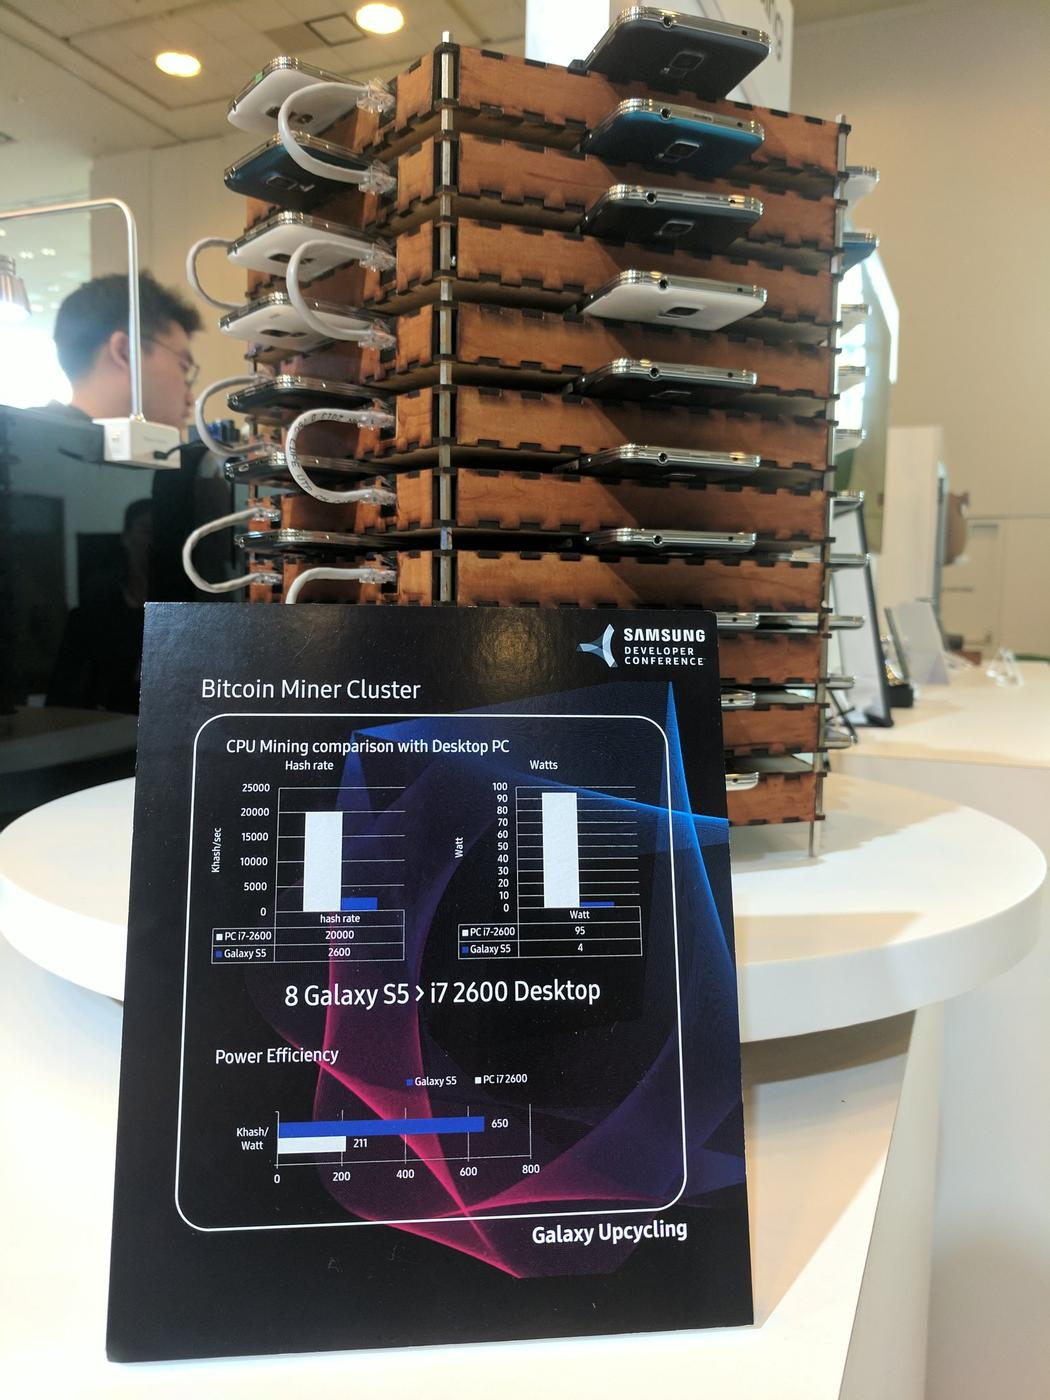 Samsung Builds Bitcoin Mining Rig Using 40 Old Galaxy S5s